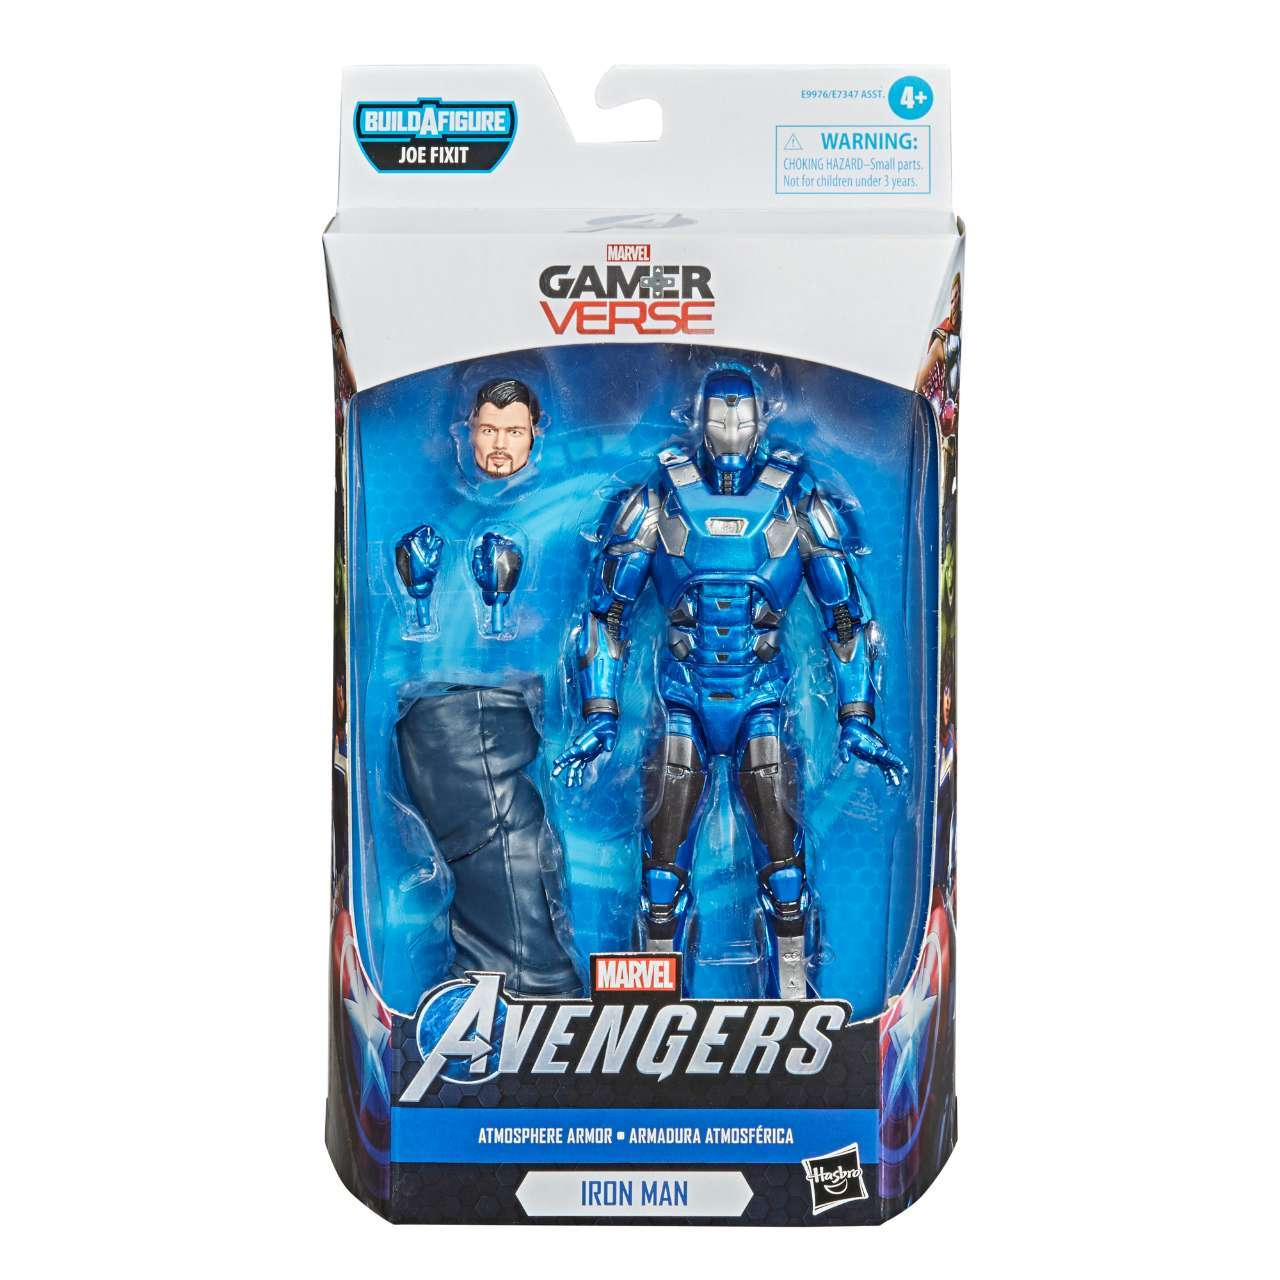 MARVEL LEGENDS SERIES 6-INCH GAMERVERSE ATMOSPHERE IRON MAN Figure - in pck